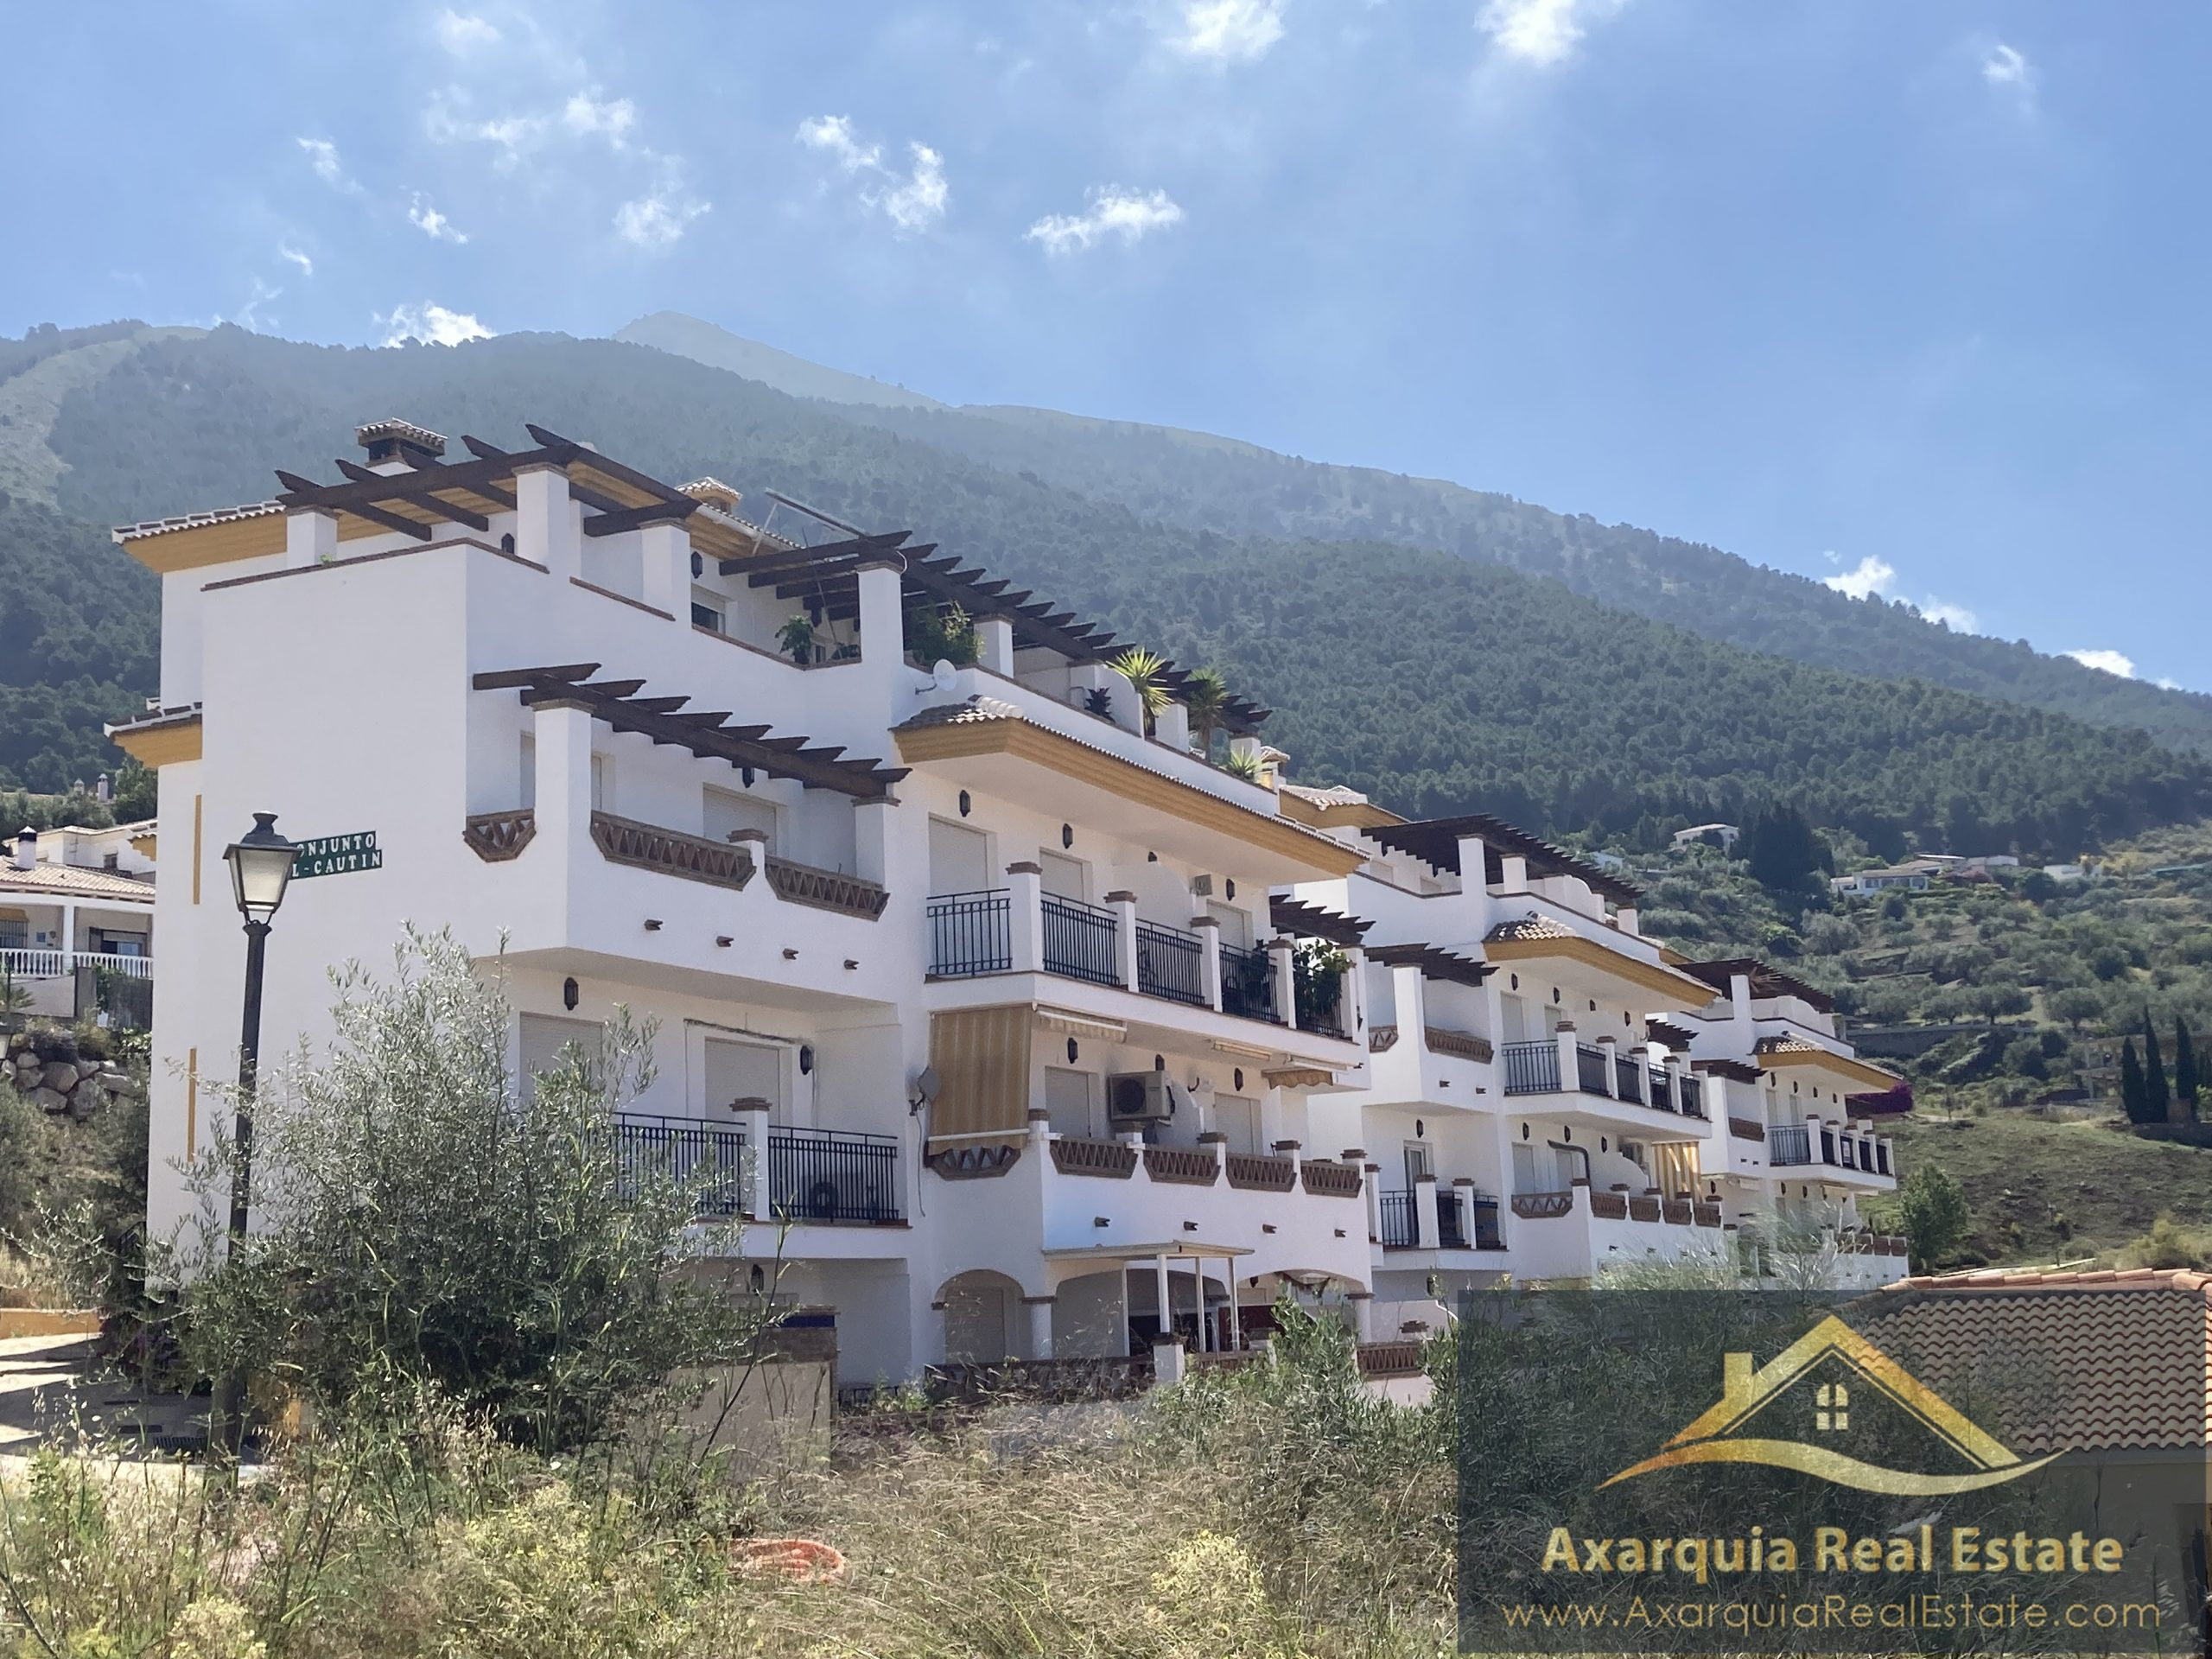 1 bedroom apartment in Alcaucin with stunning views.